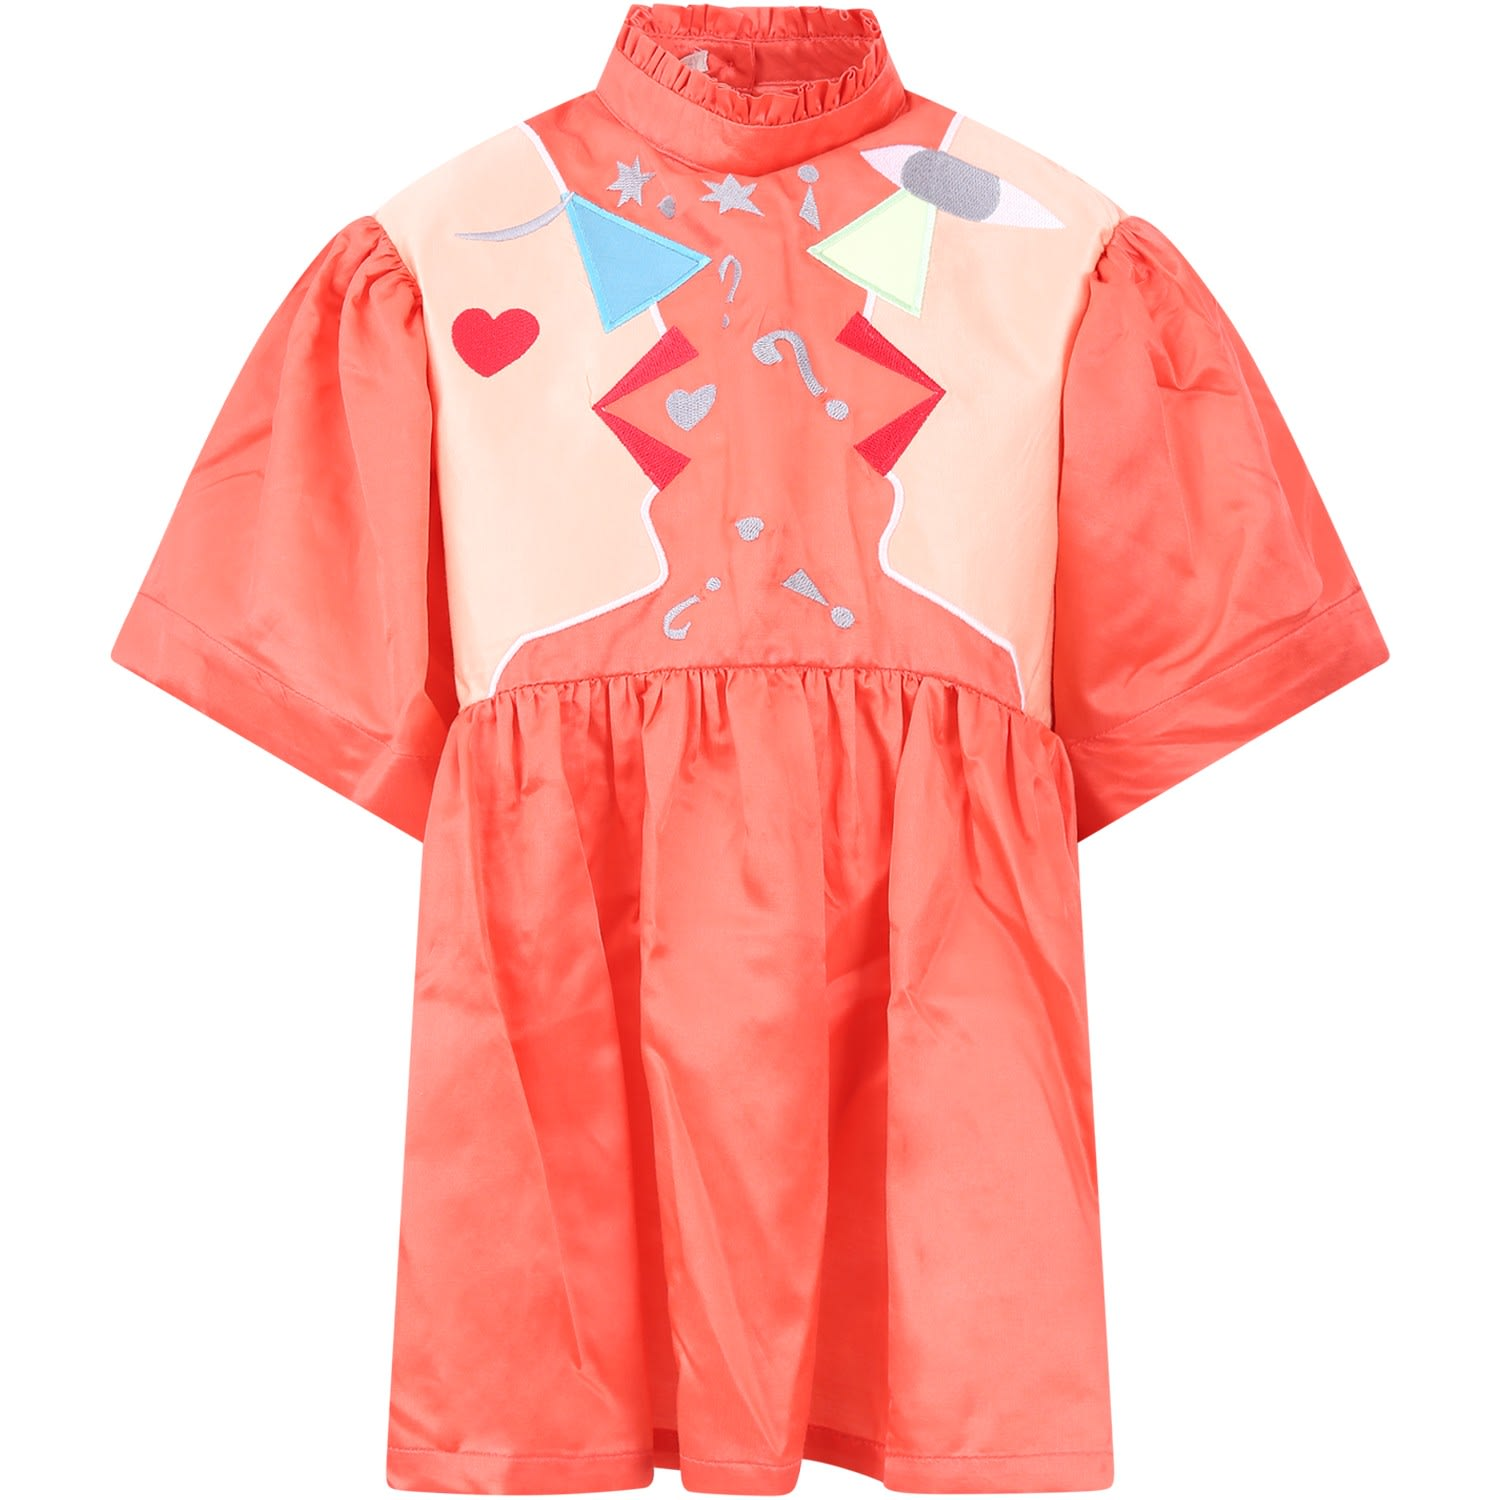 Raspberry Plum Pink hannahgirl Dress With Colorful Figures